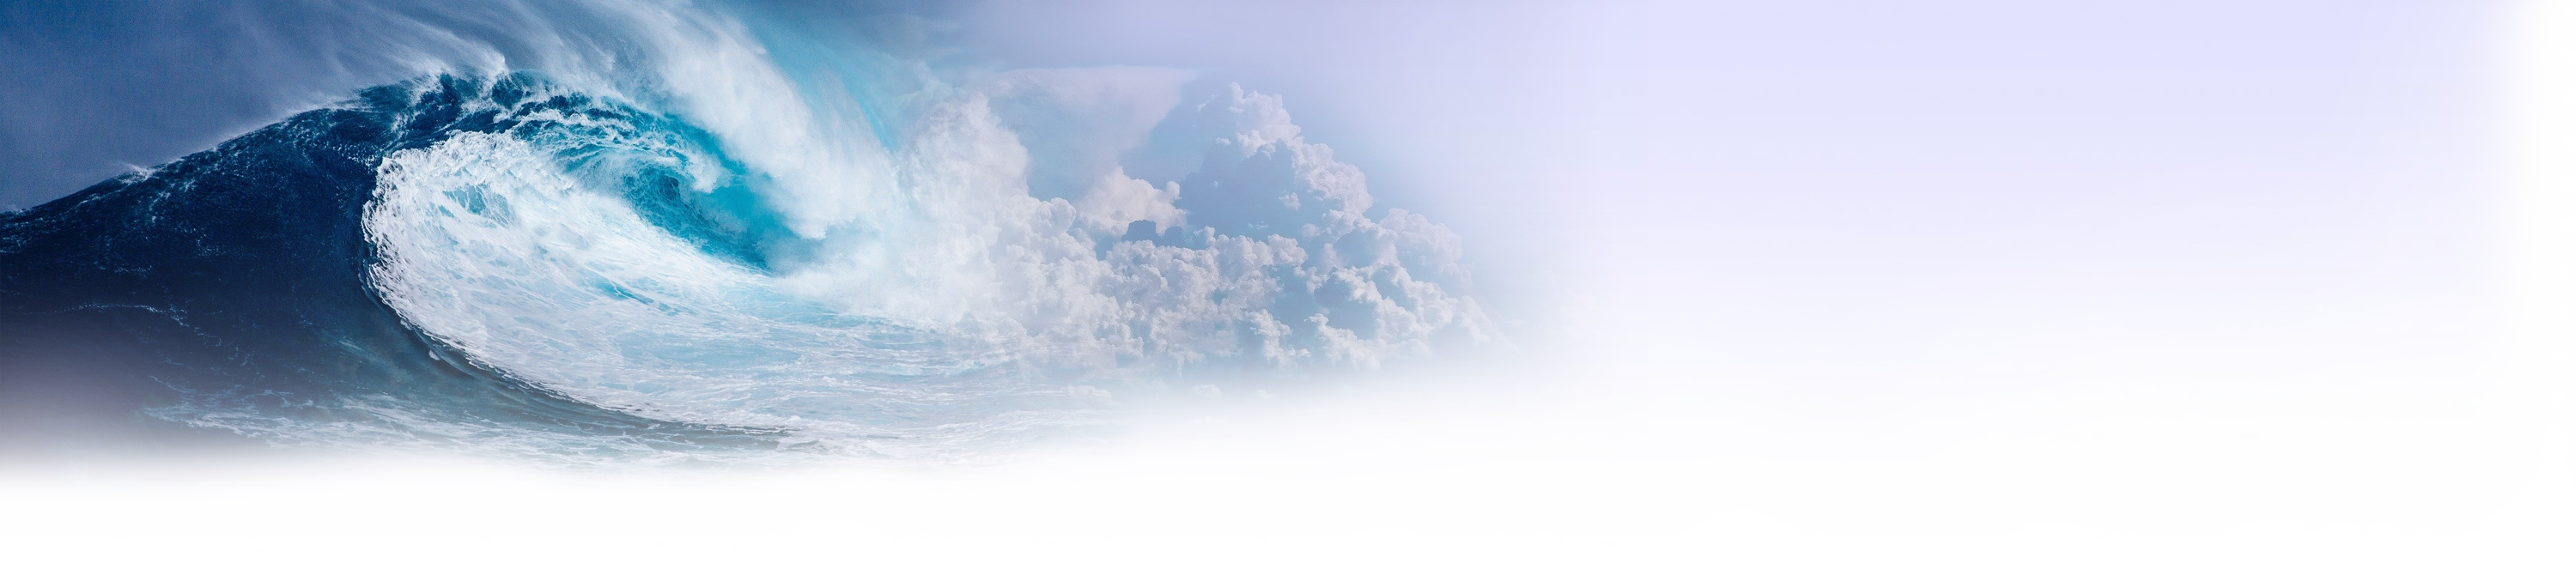 wolkensurf01.png